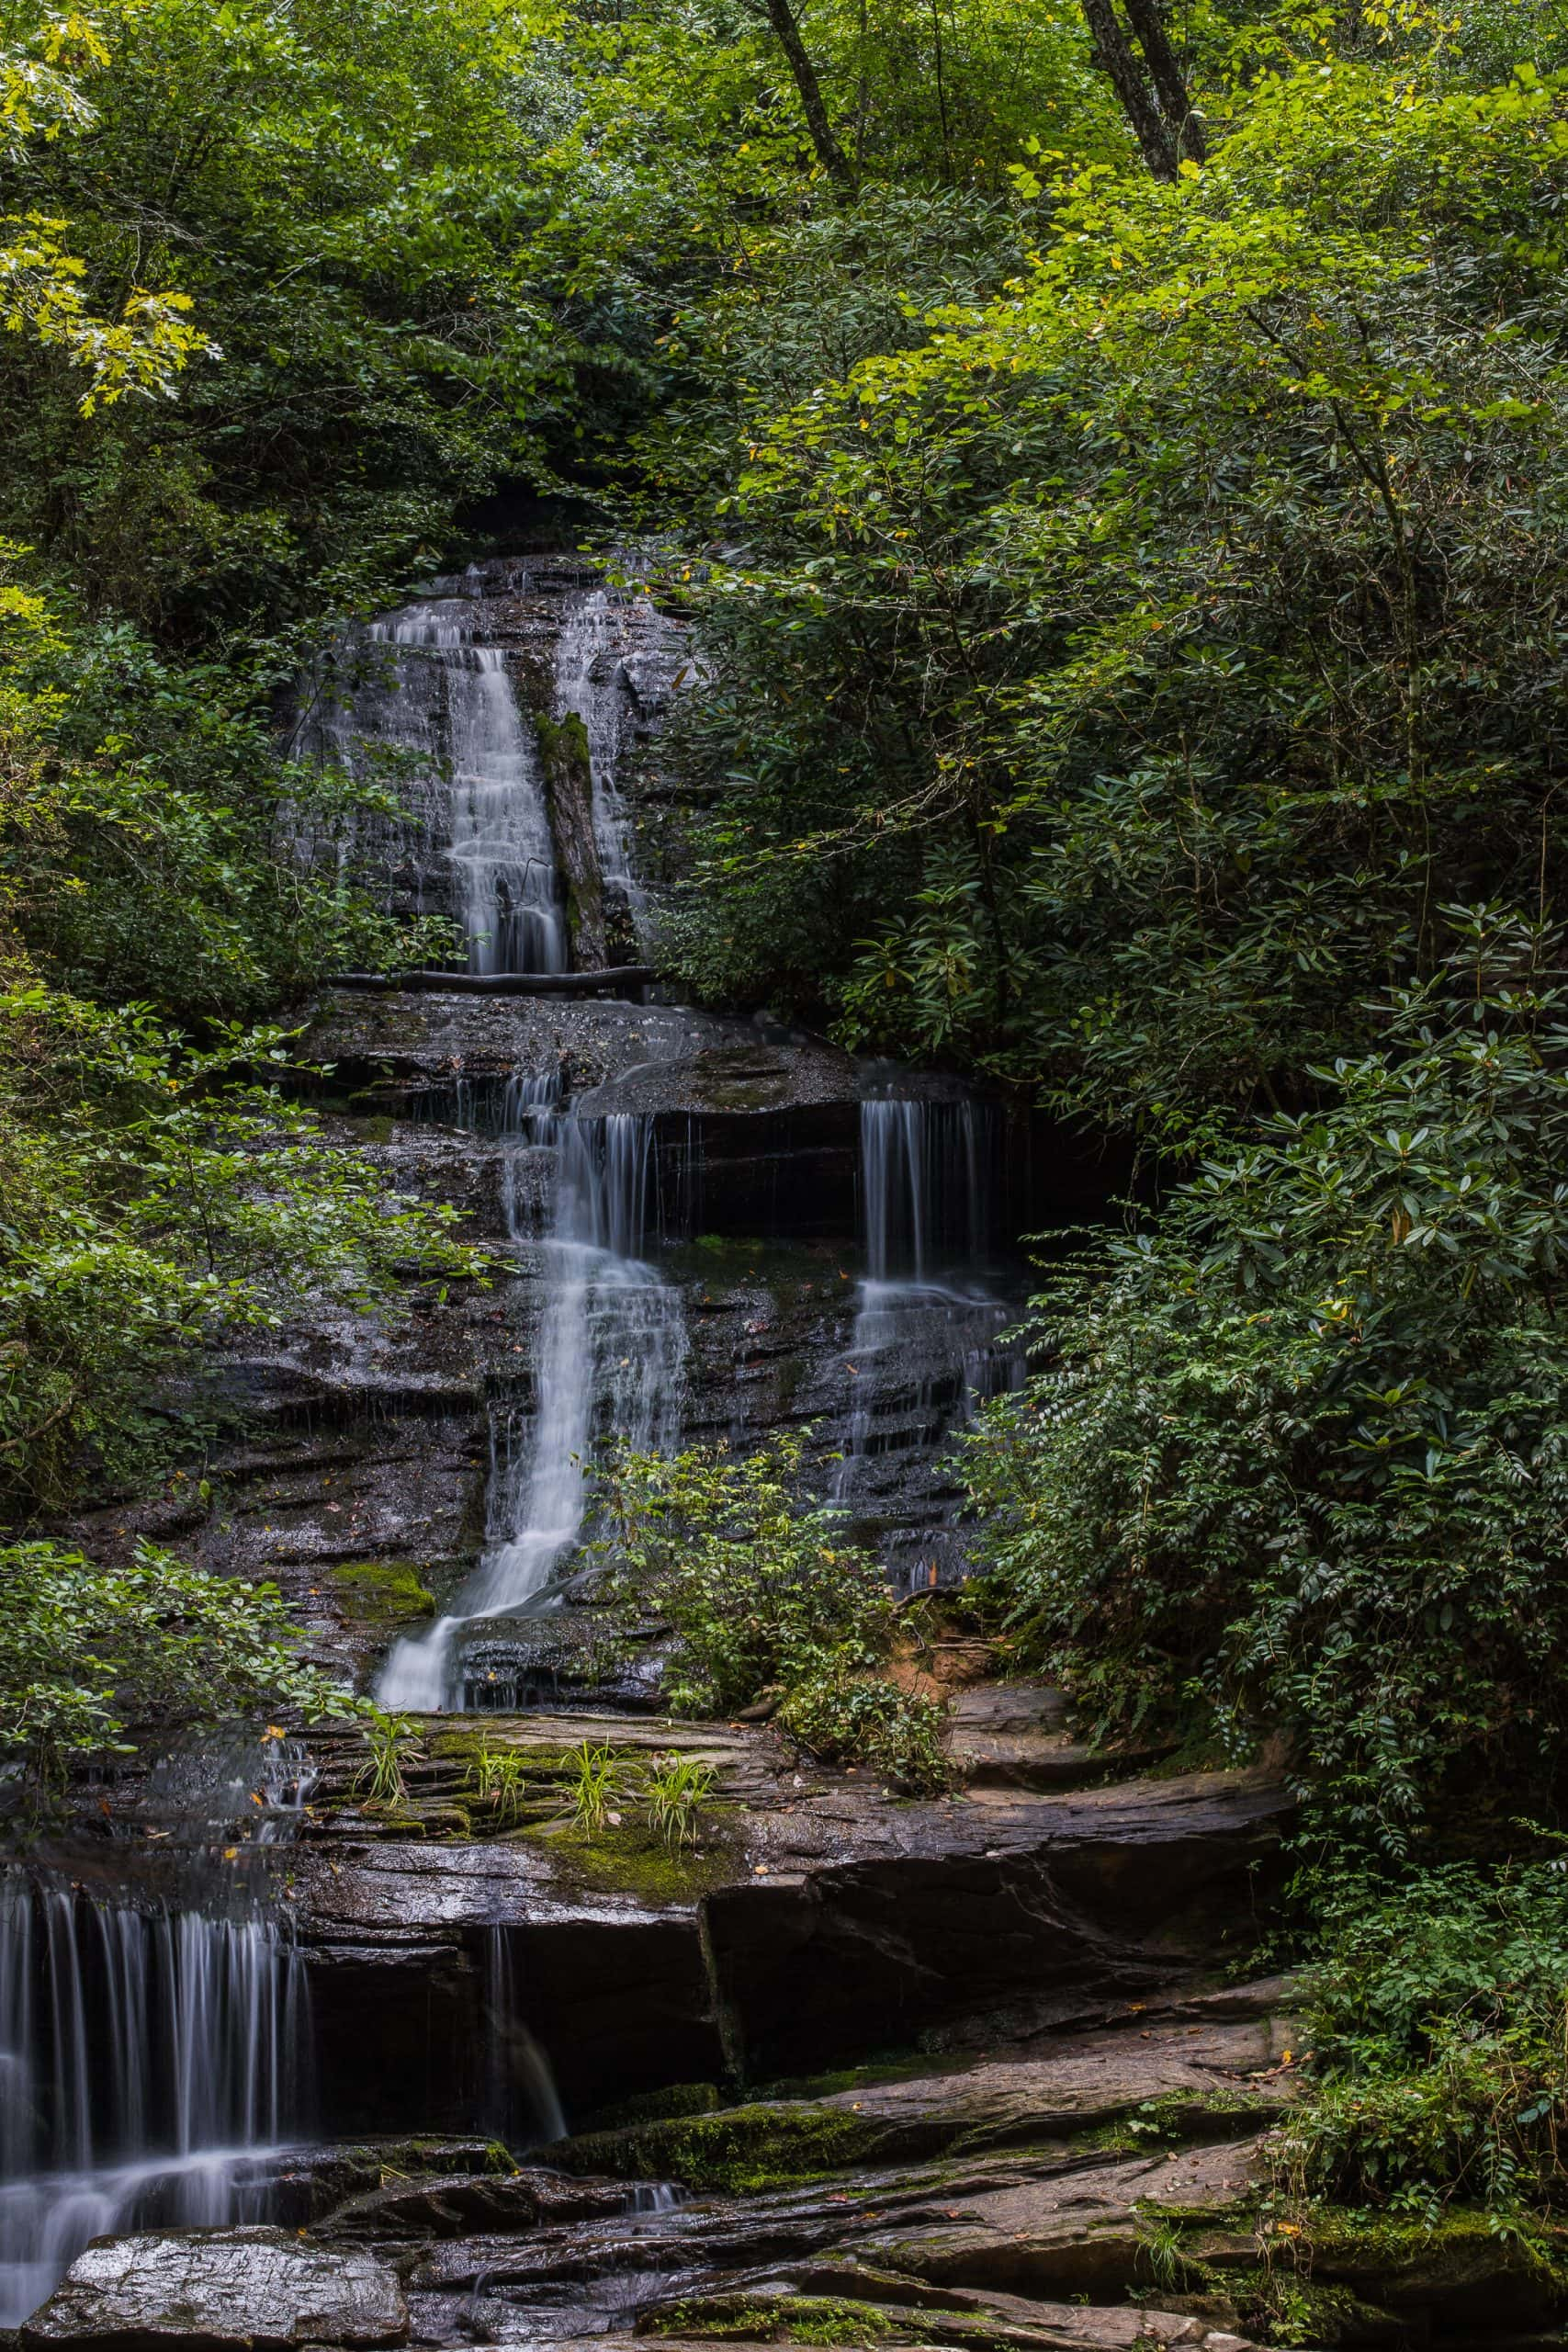 Wide shot of Tom Branch Falls and surrounding trees